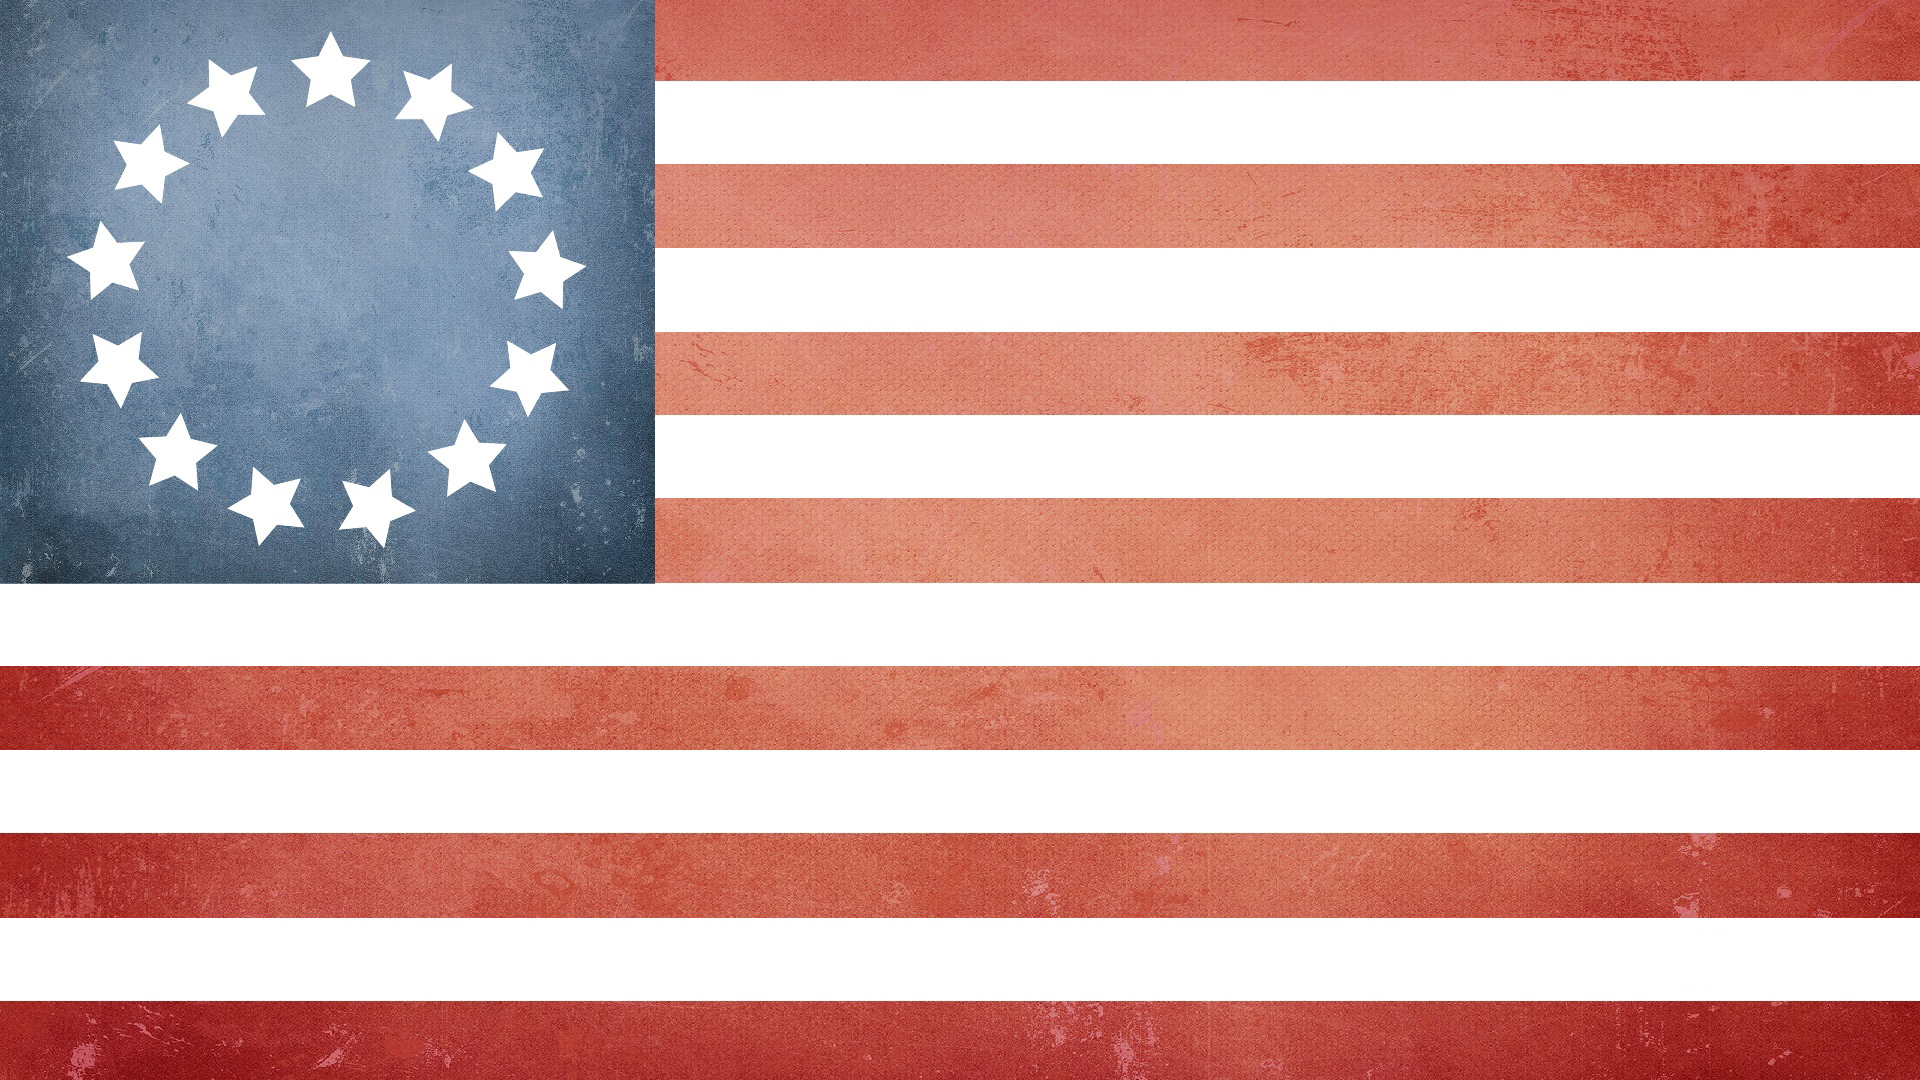 June 2015 my thoughts early american flag with 13 stars for the 13 states publicscrutiny Choice Image